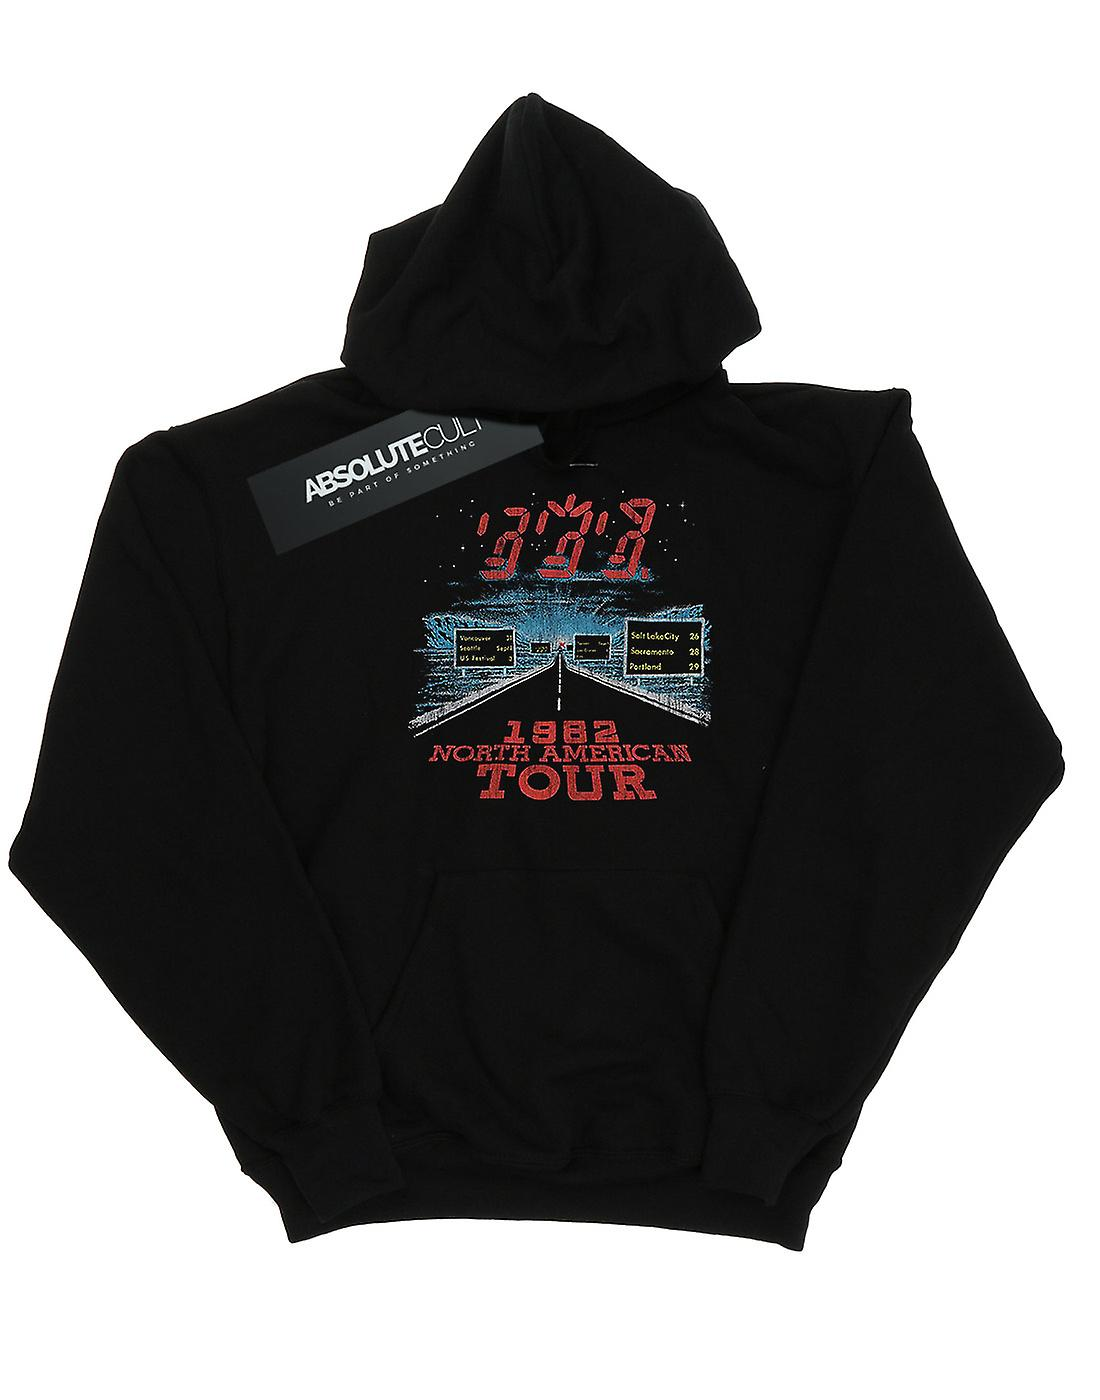 The Police Men's North American Tour Hoodie